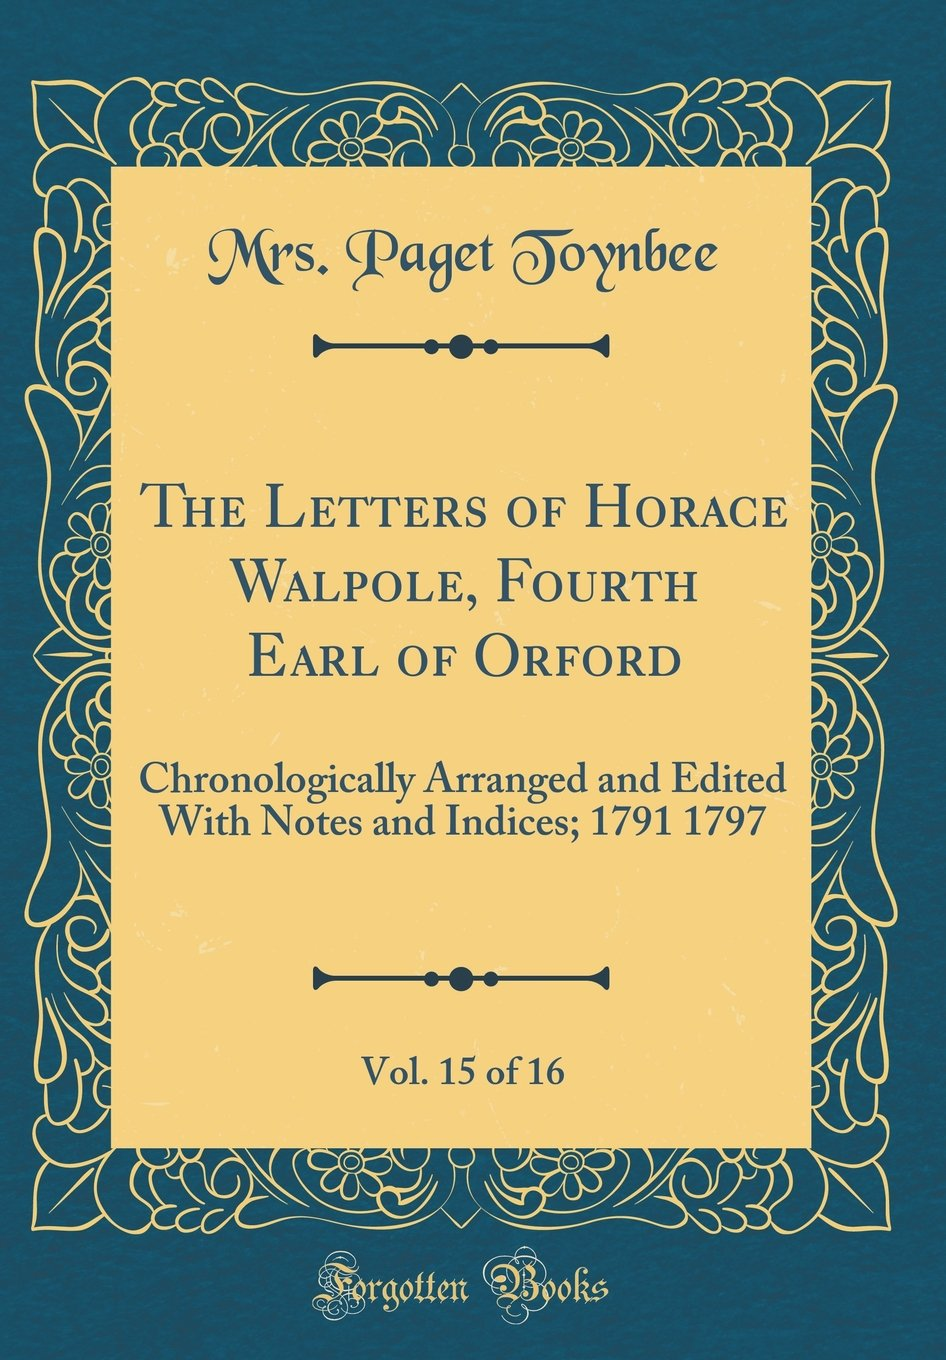 The Letters of Horace Walpole, Fourth Earl of Orford, Vol. 15 of 16: Chronologically Arranged and Edited With Notes and Indices; 1791 1797 (Classic Reprint) pdf